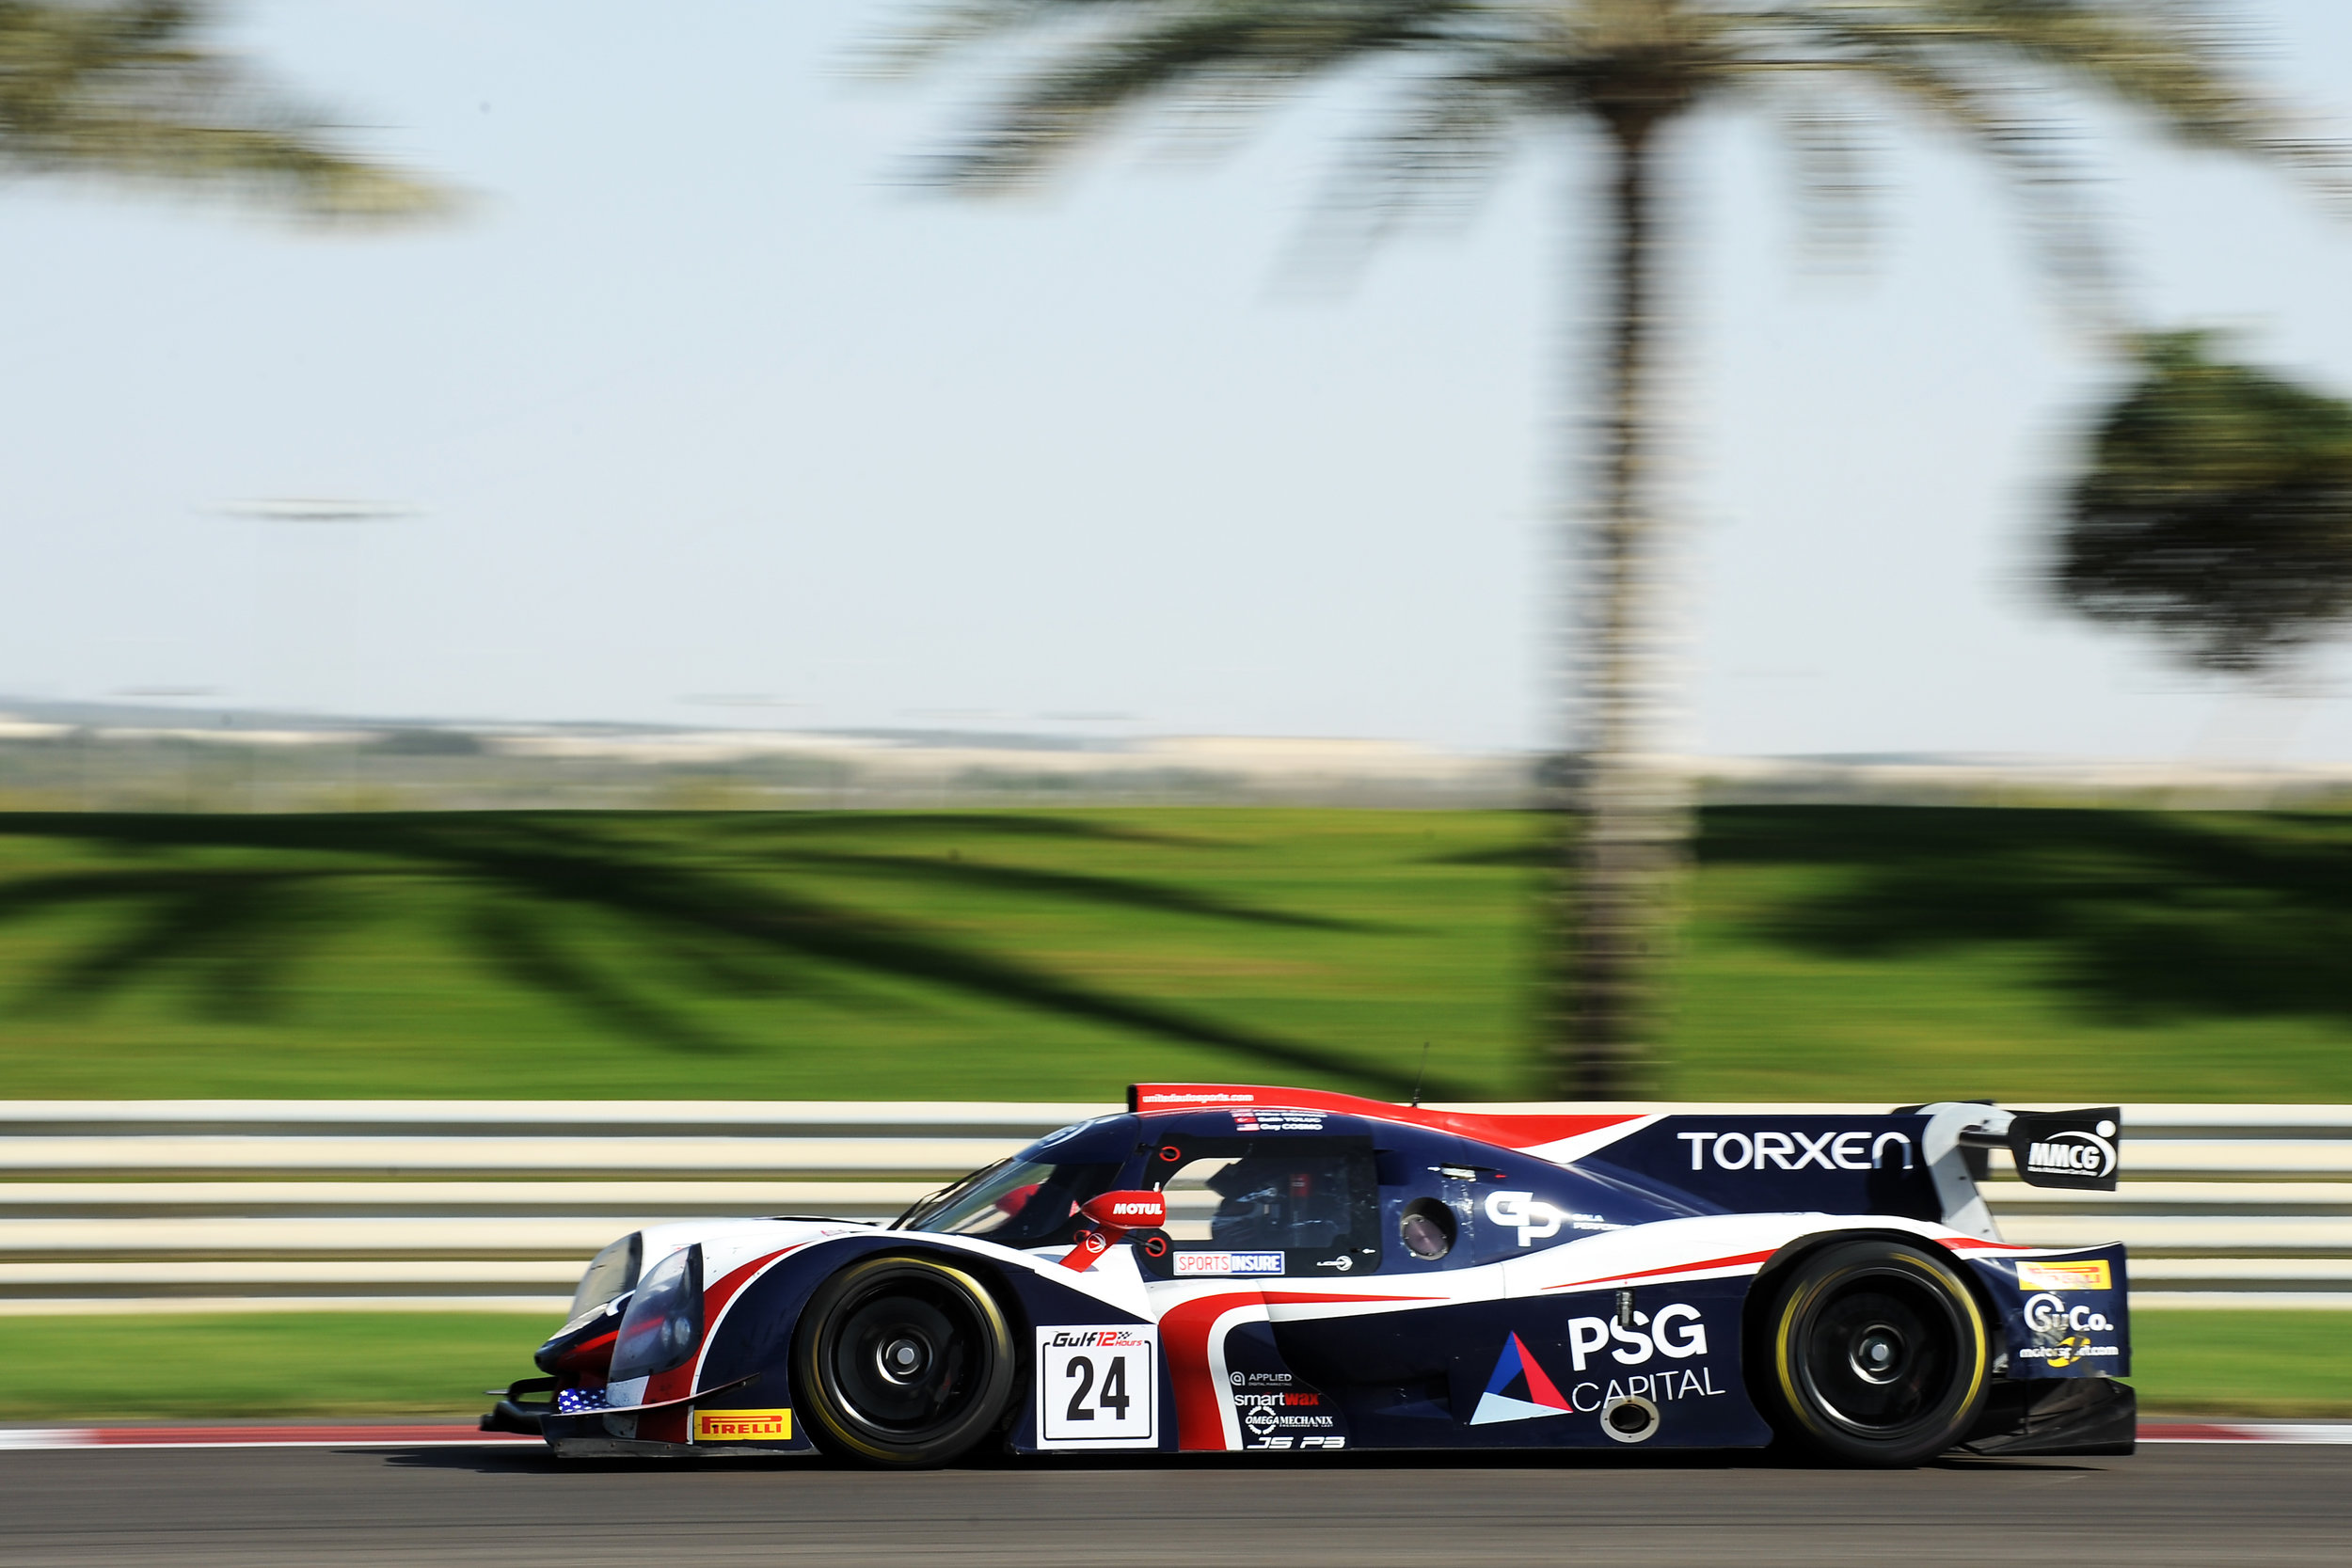 Guy Cosmo And Patrick Byrne Return To Asian Le Mans Series Defend Championship Alongside Salih